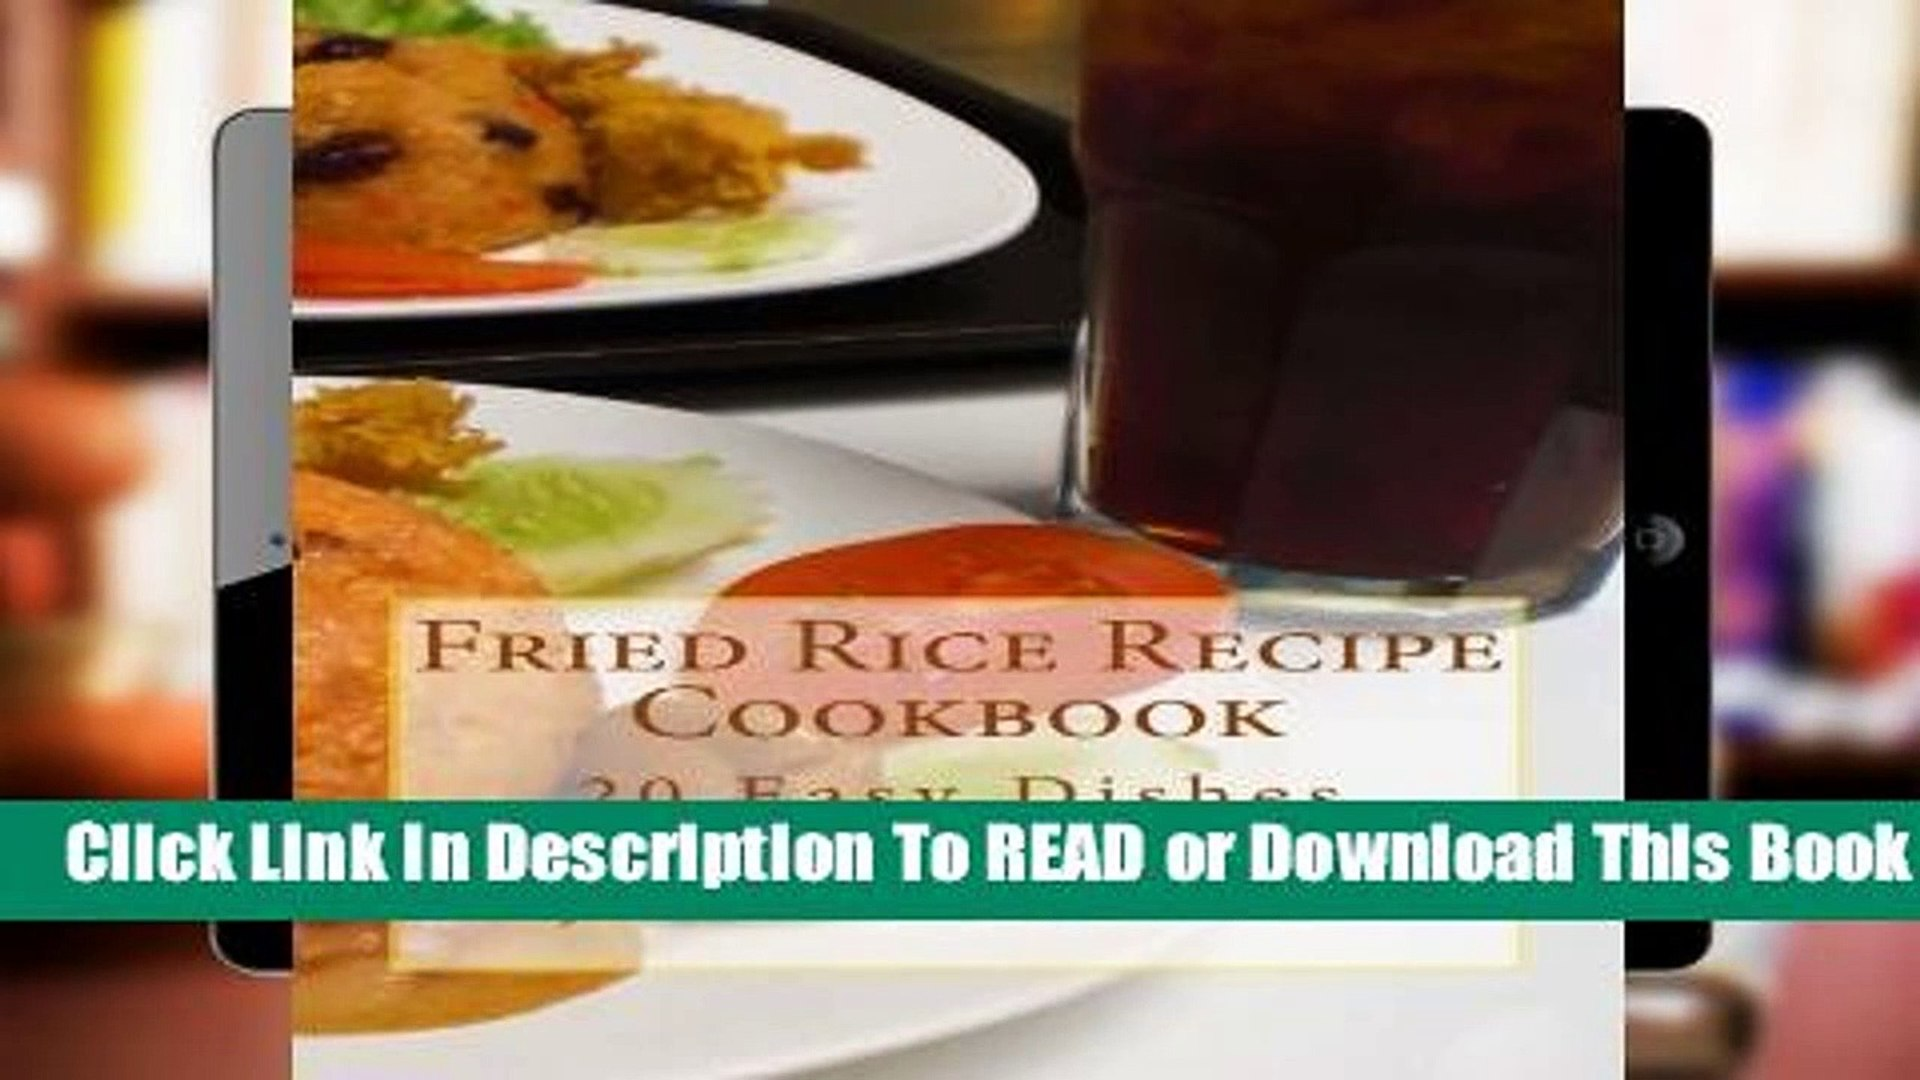 Full version  Fried Rice Recipe Cookbook: 20 Easy Dishes: Volume 1 (Jeen s Favorite Rice